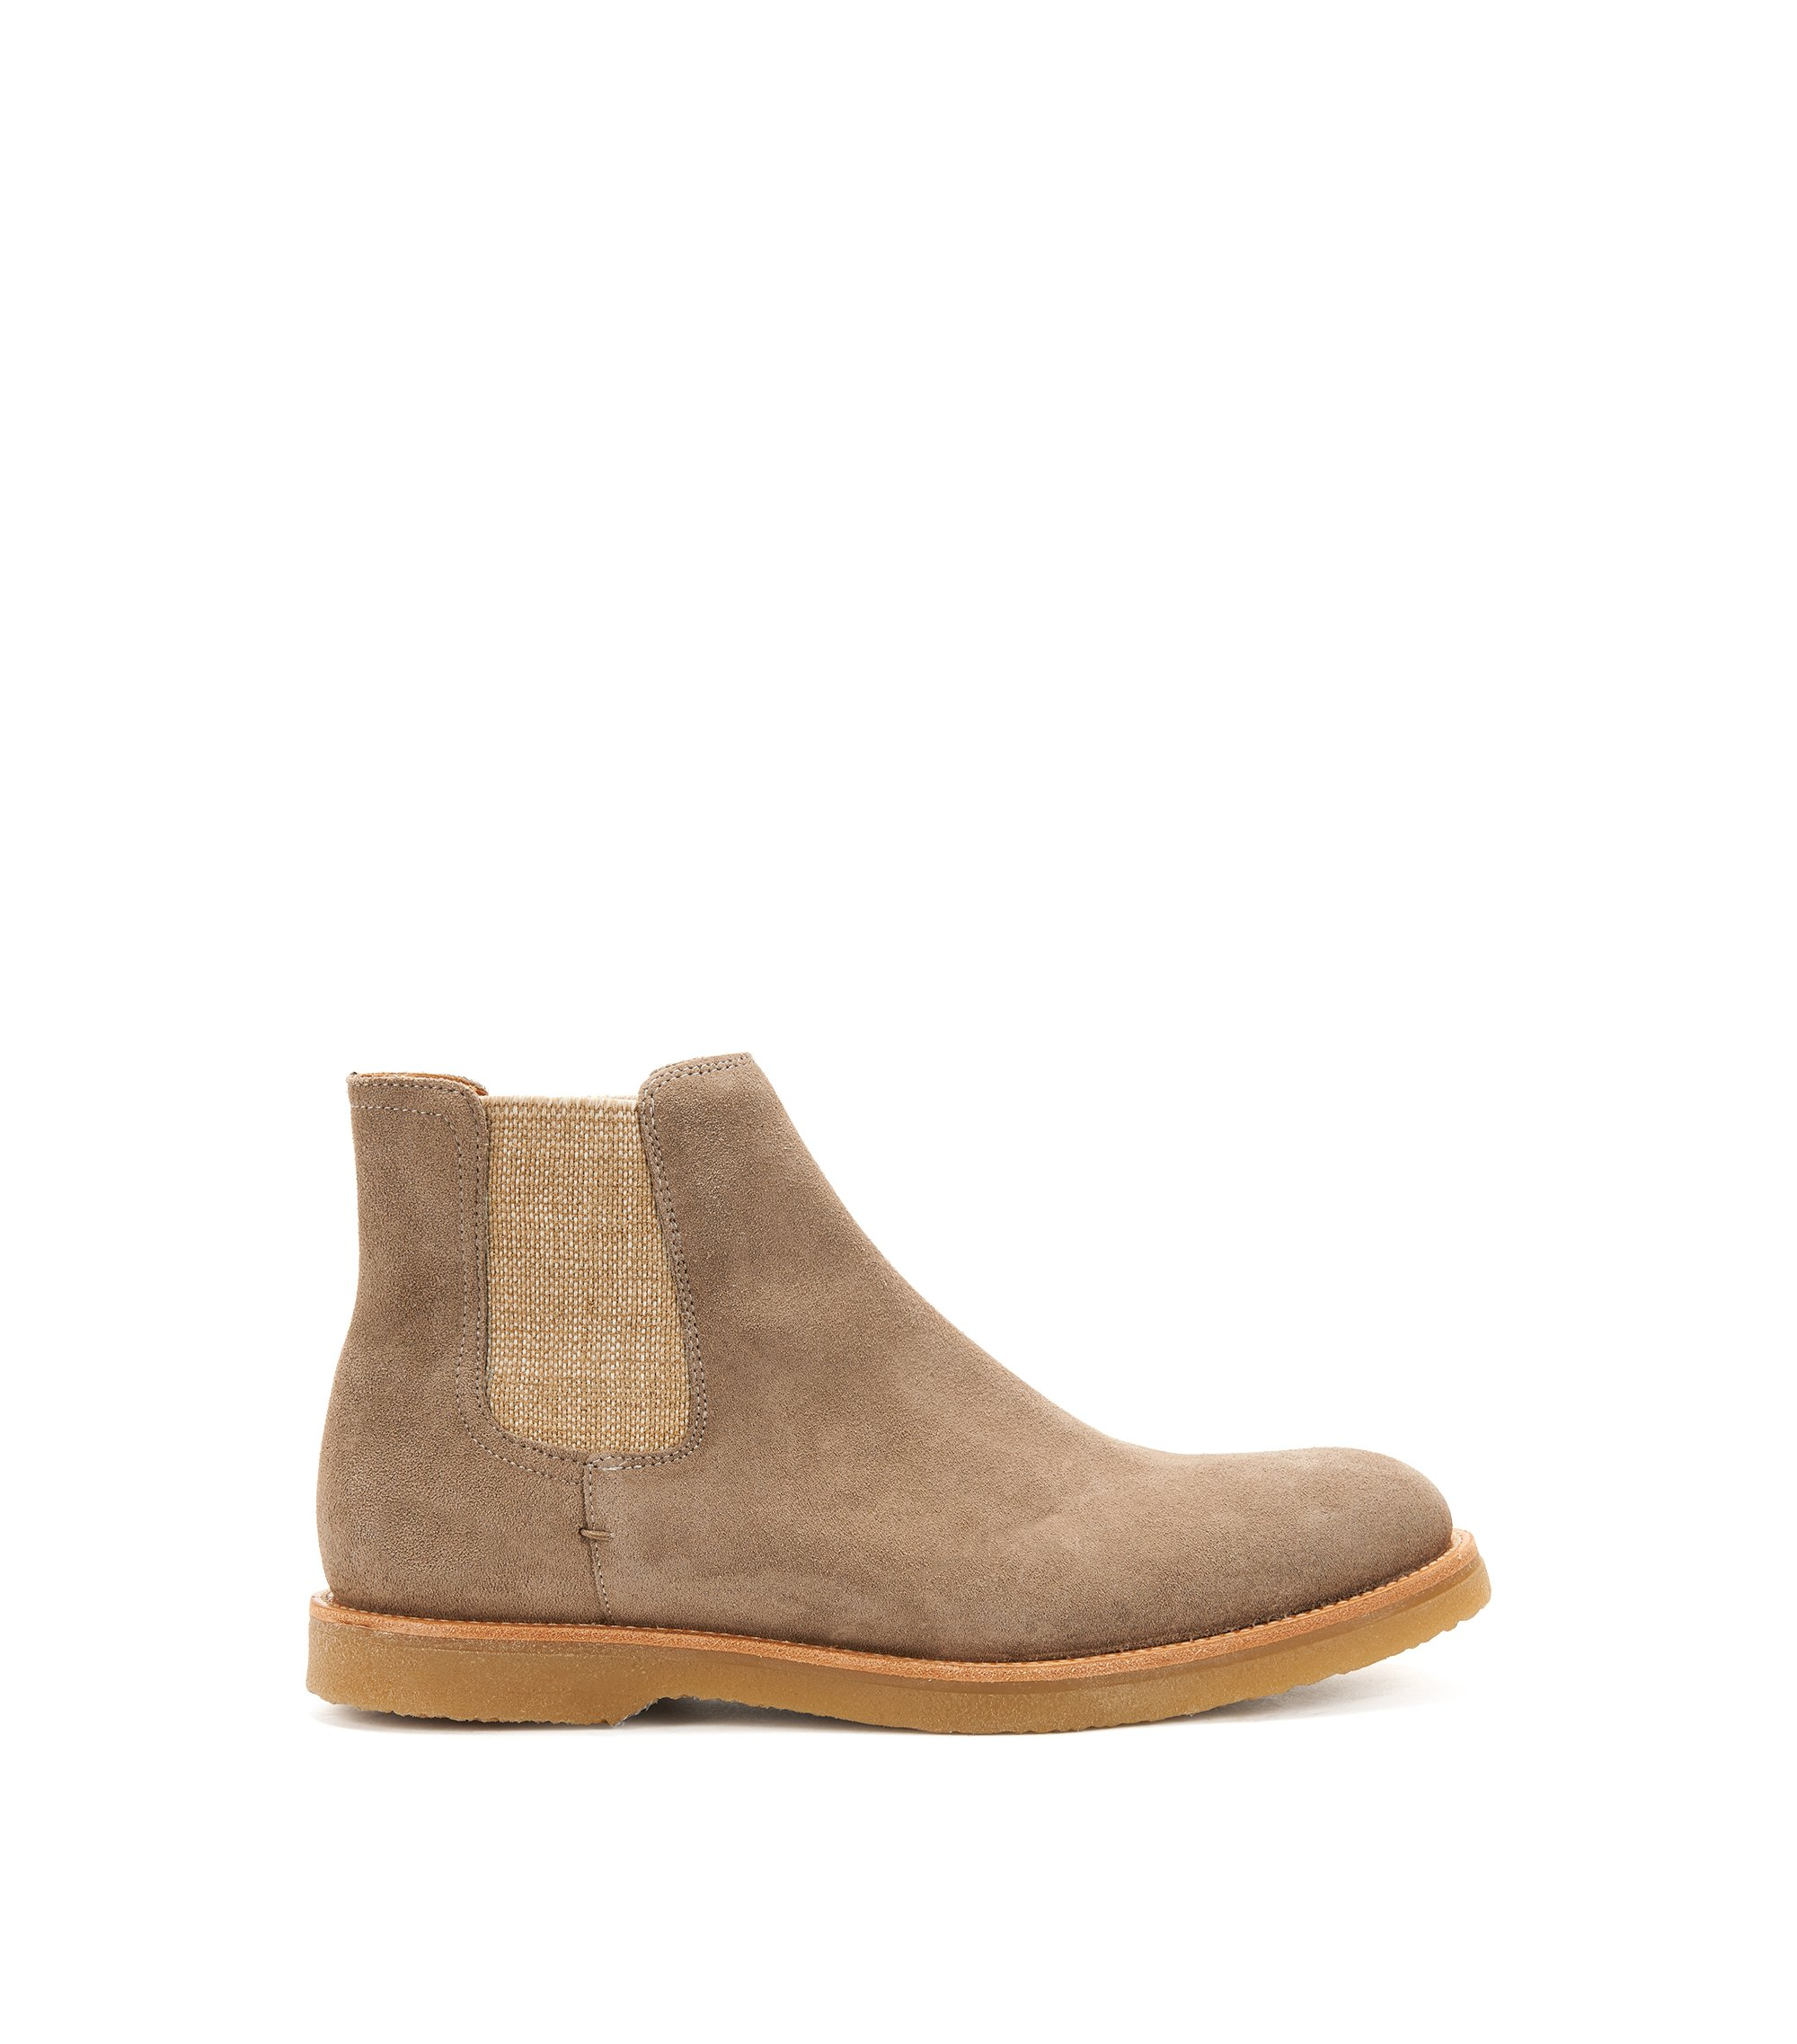 Suede Chelsea boots with rubber soles, Light Brown